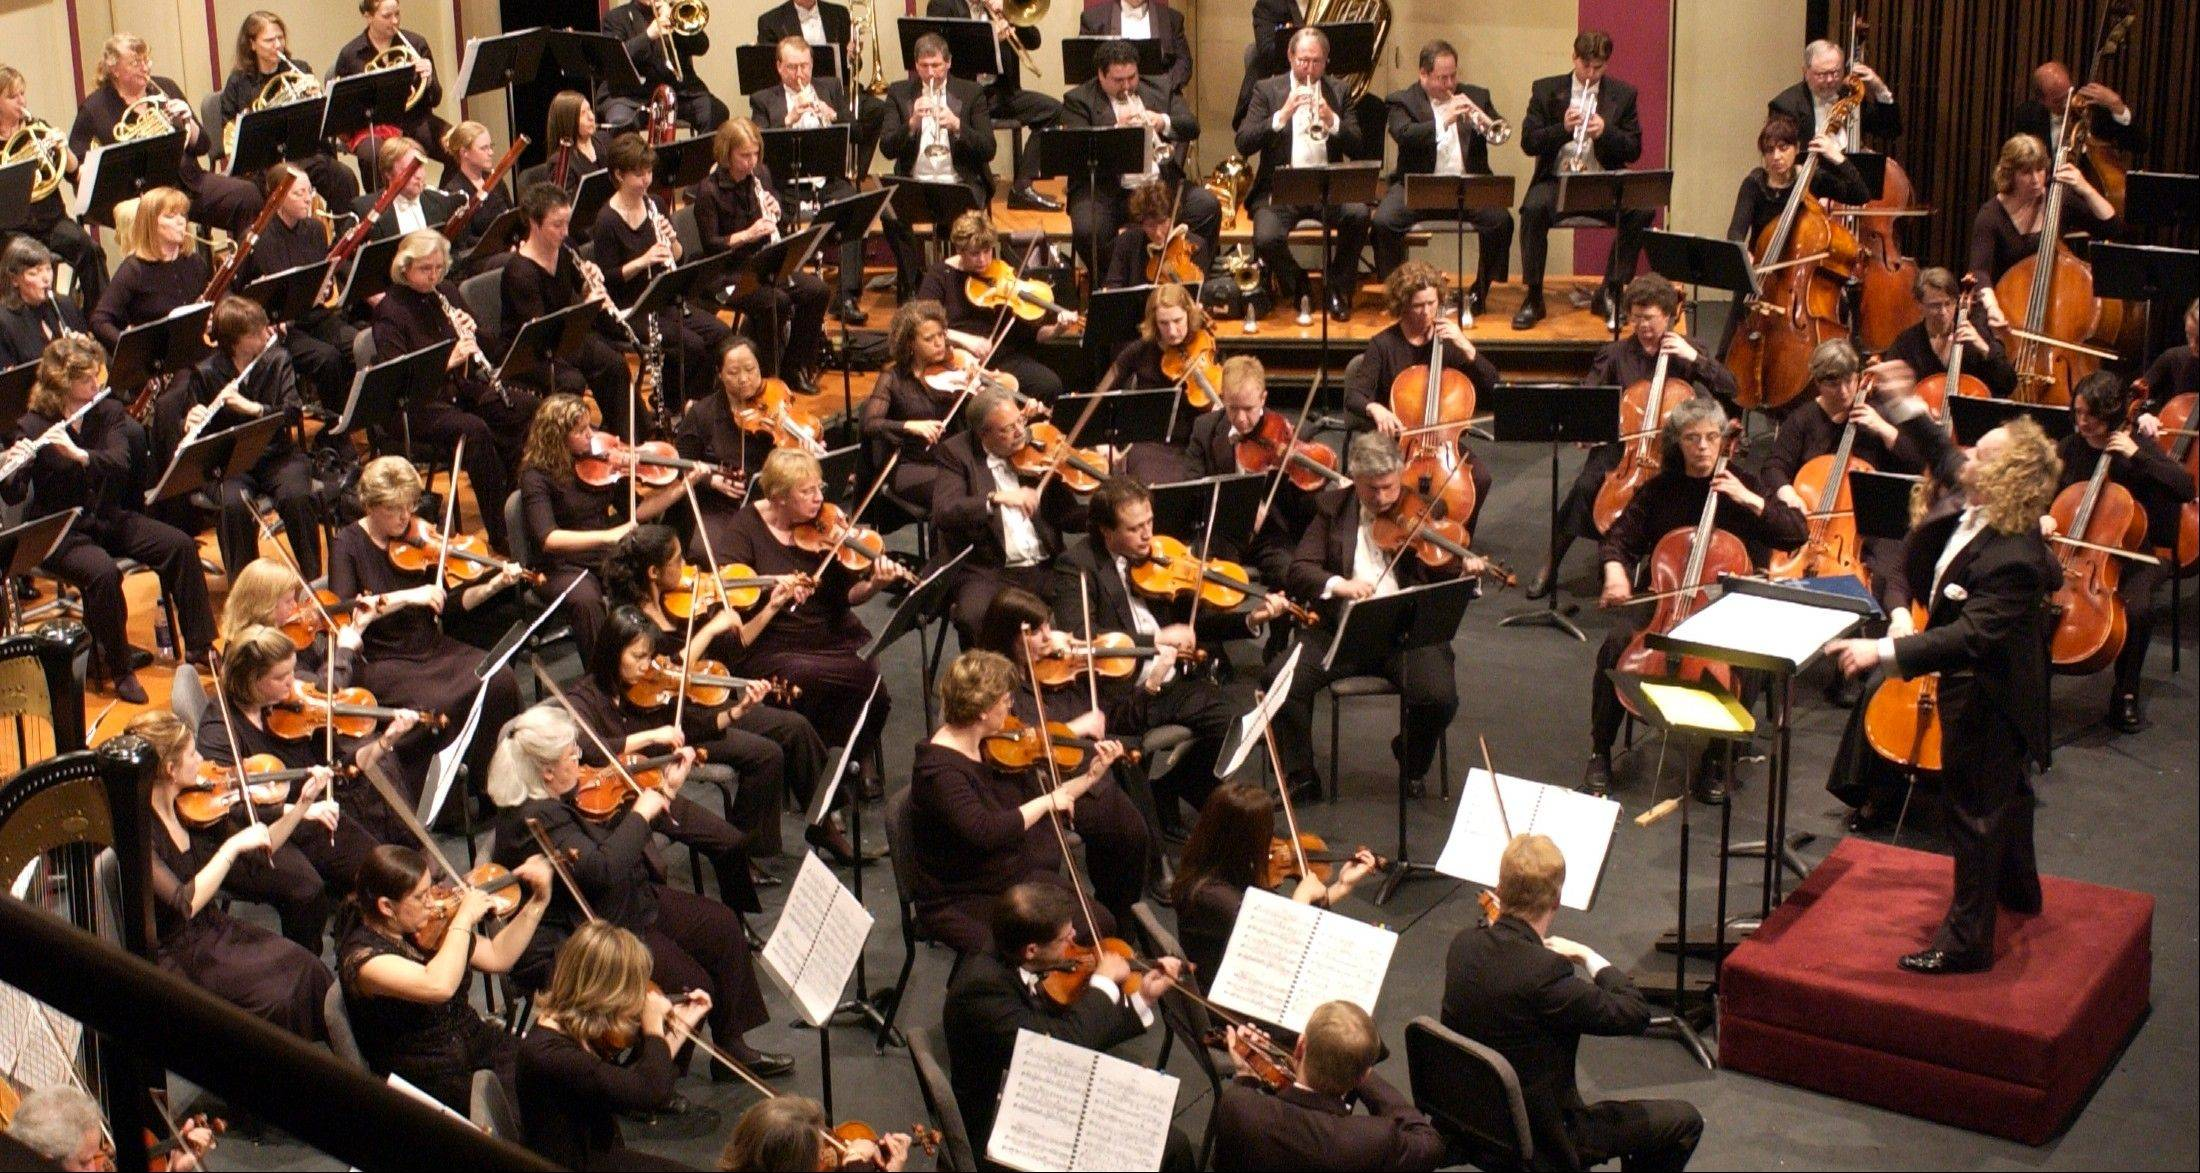 $20,000 in pledges so far for orchestra